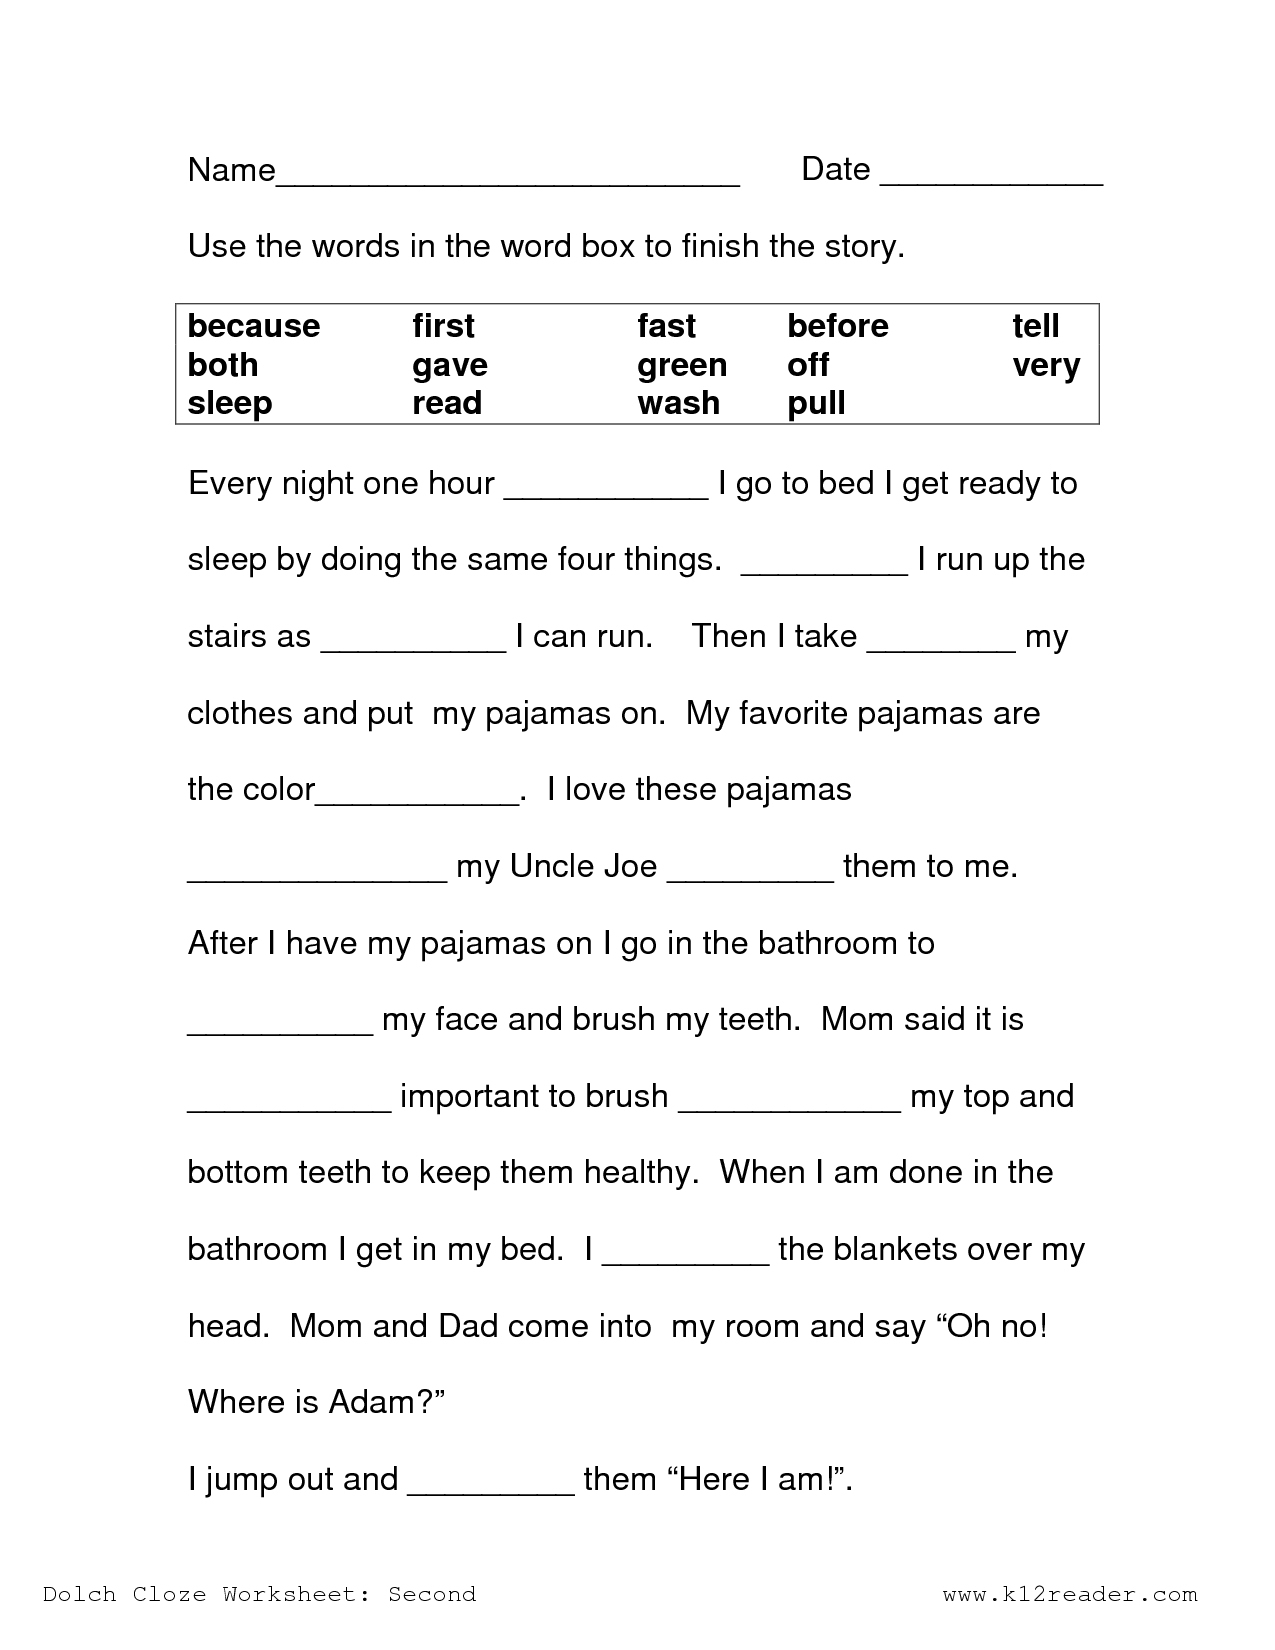 Math Worksheet: 2Nd Grade Science Worksheets Free Printable Easy - Printable Crossword Puzzles 2Nd Grade